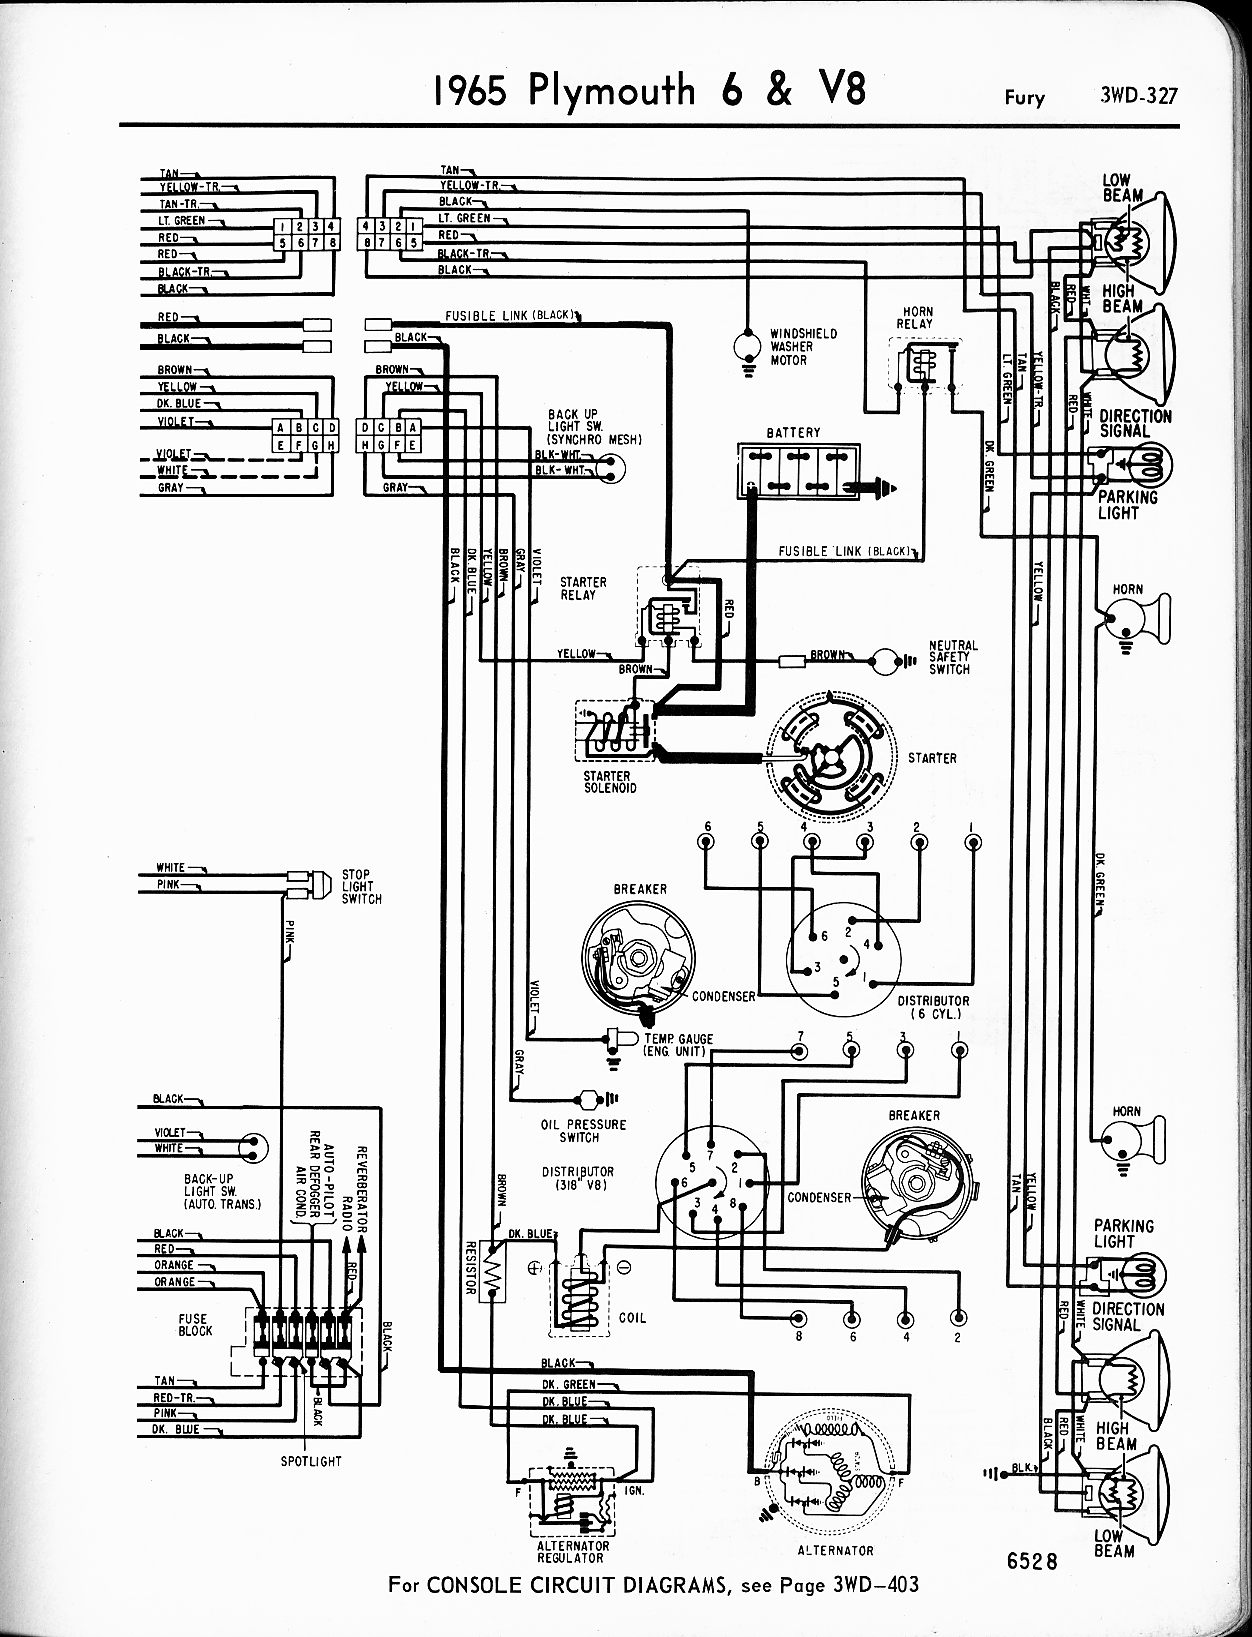 1965 dodge coronet wiring diagram wiring diagram Impedance Speaker Wiring Diagrams 64 dodge wiring diagram wiring diagram1964 dodge wiring schematics data wiring diagramsbasic ignition wiring diagram 1964